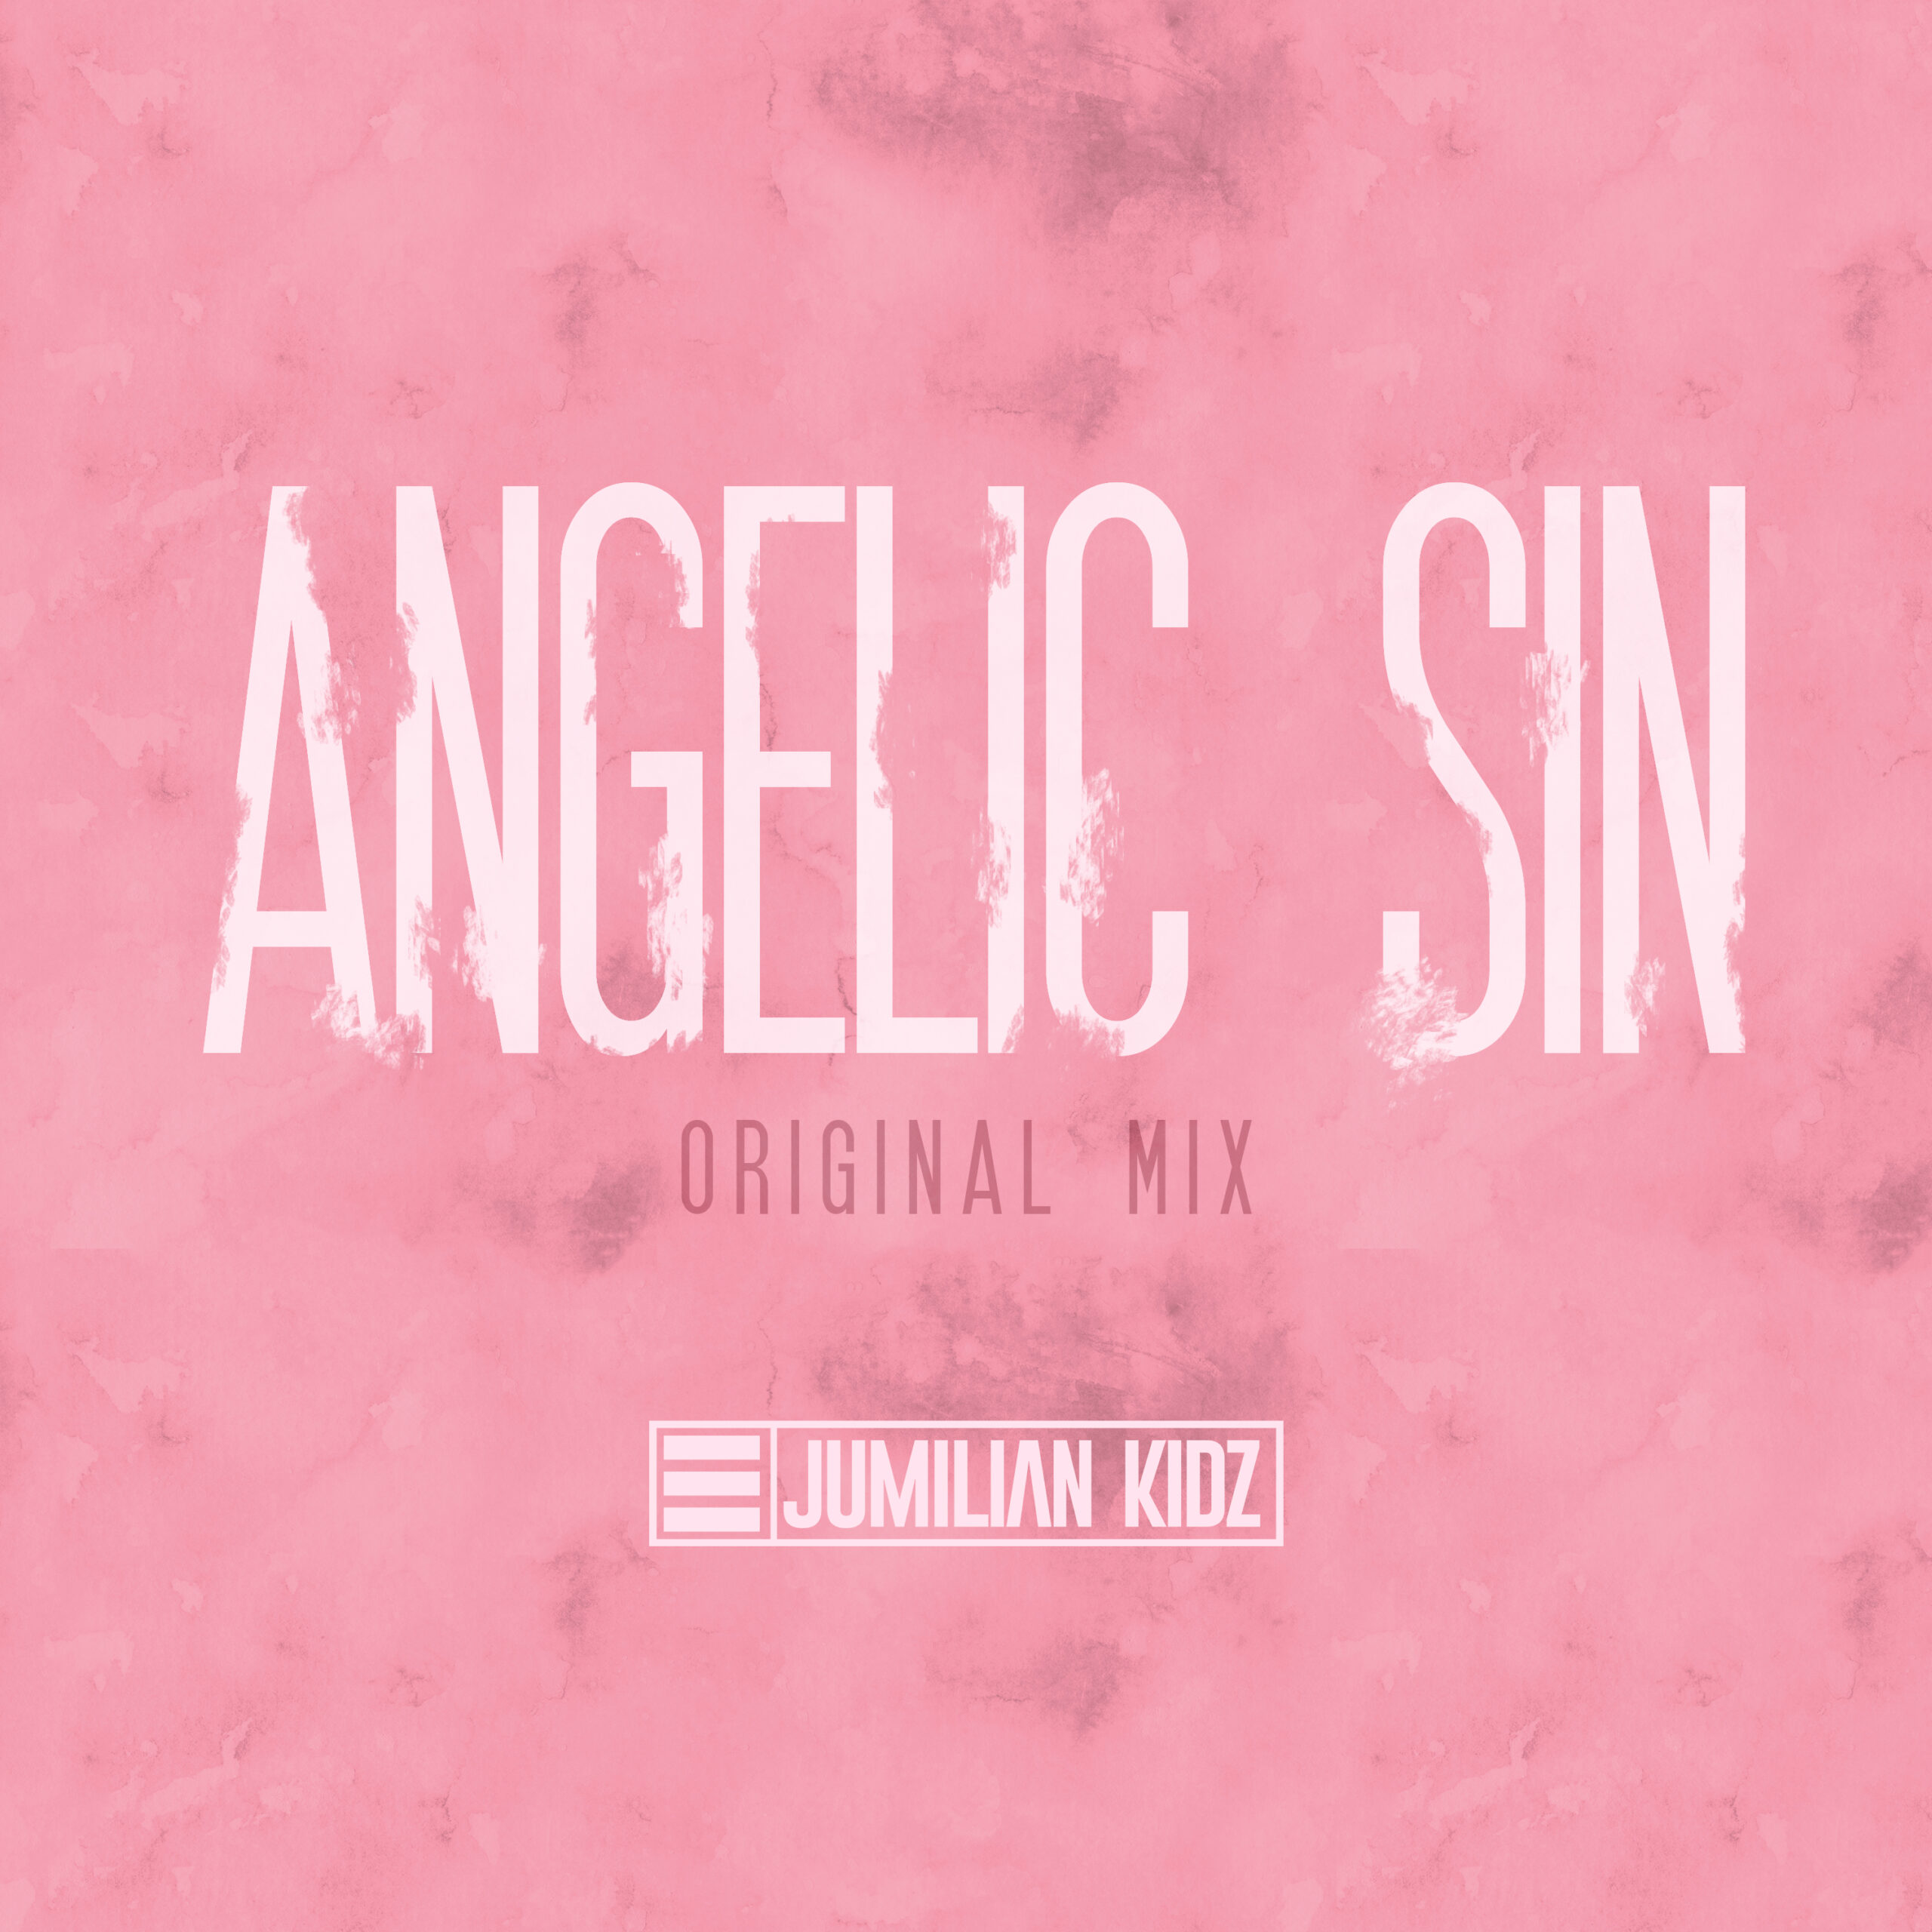 Angelic Sin by Jumilian Kidz (Artwork)